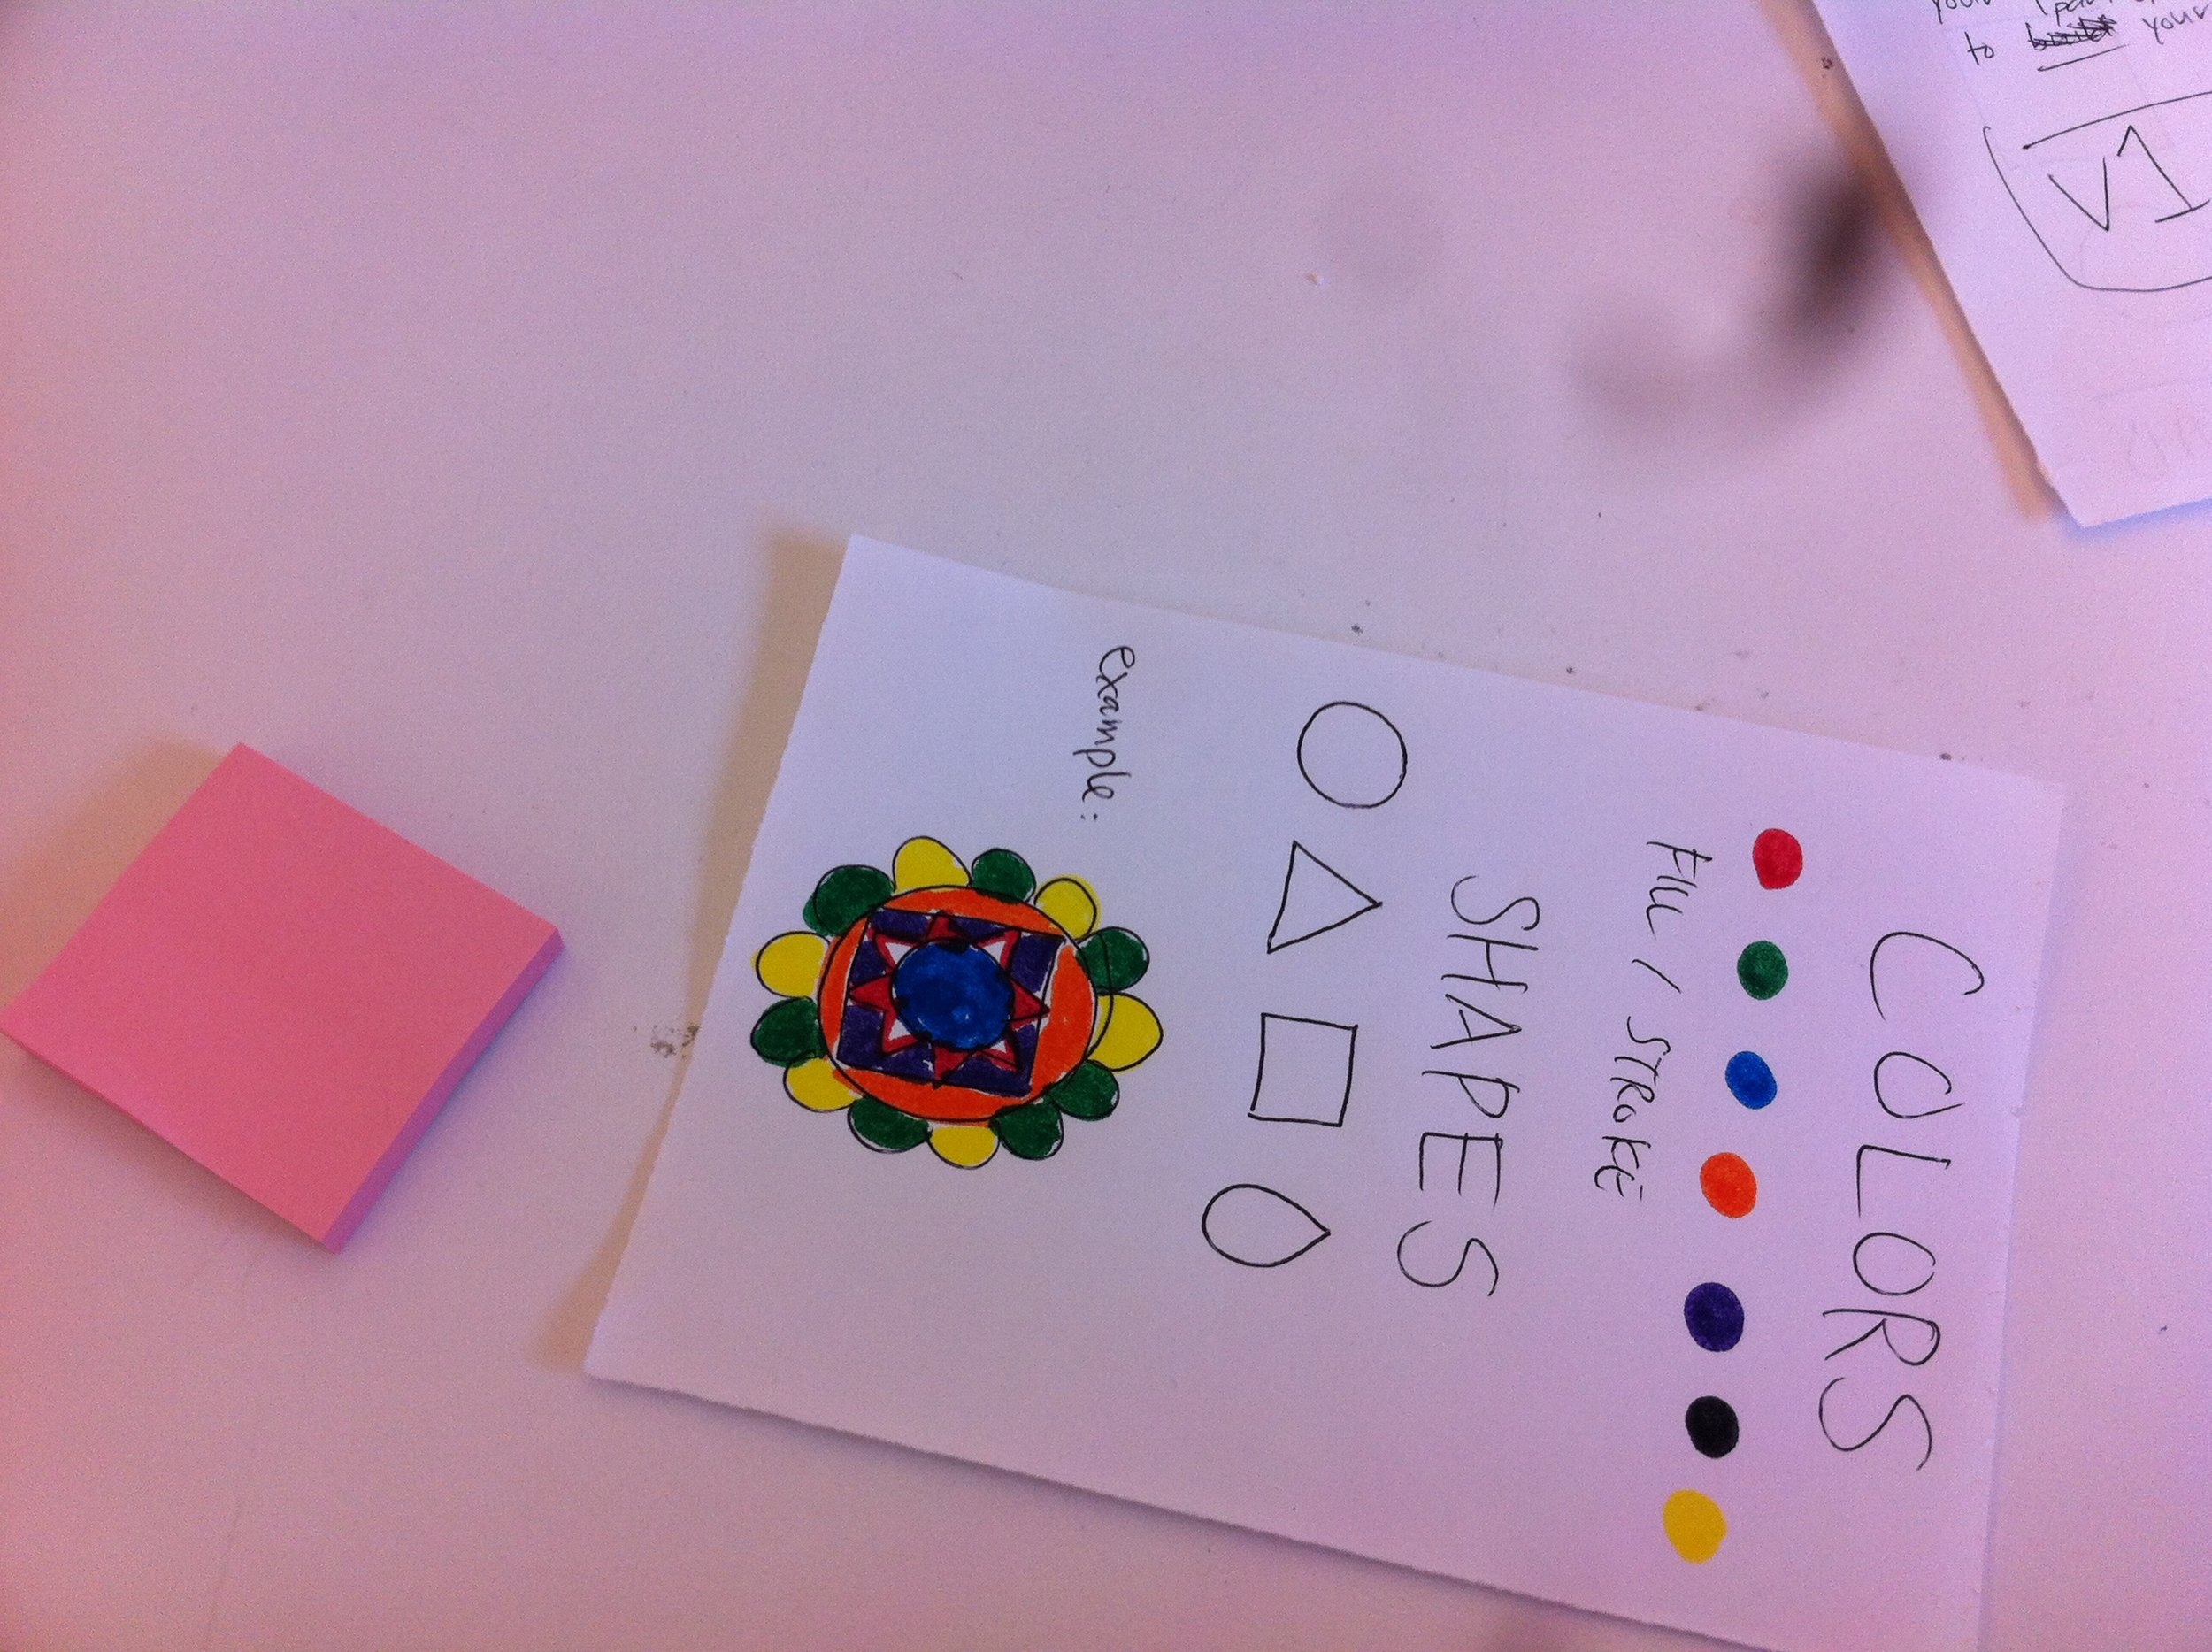 The paper shown here acts as a prototype for an interface for users to choose colors and shapes.